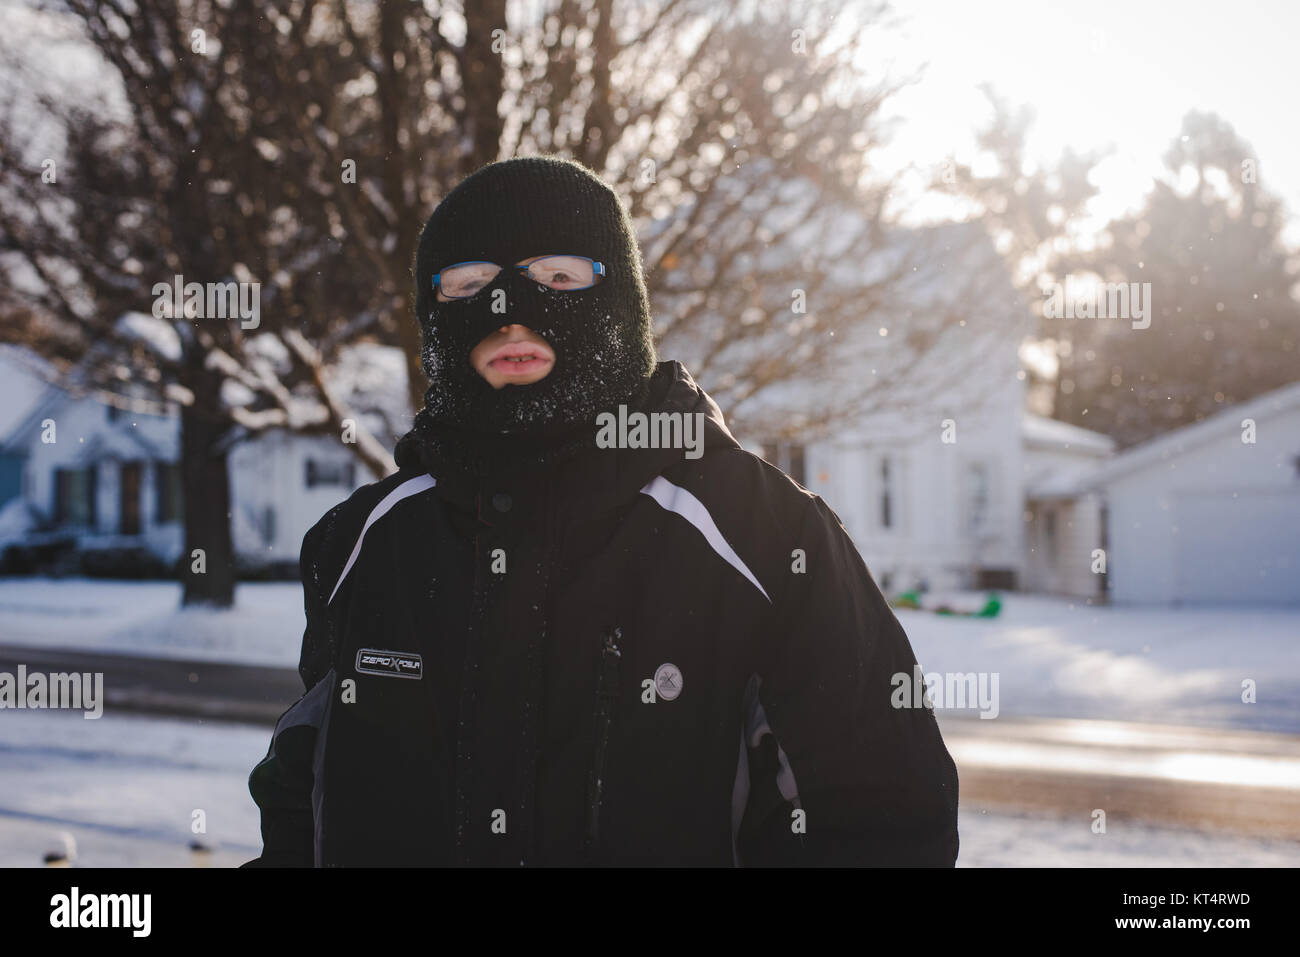 A young boy wearing a winter ski mask plays in the snow during the day. - Stock Image